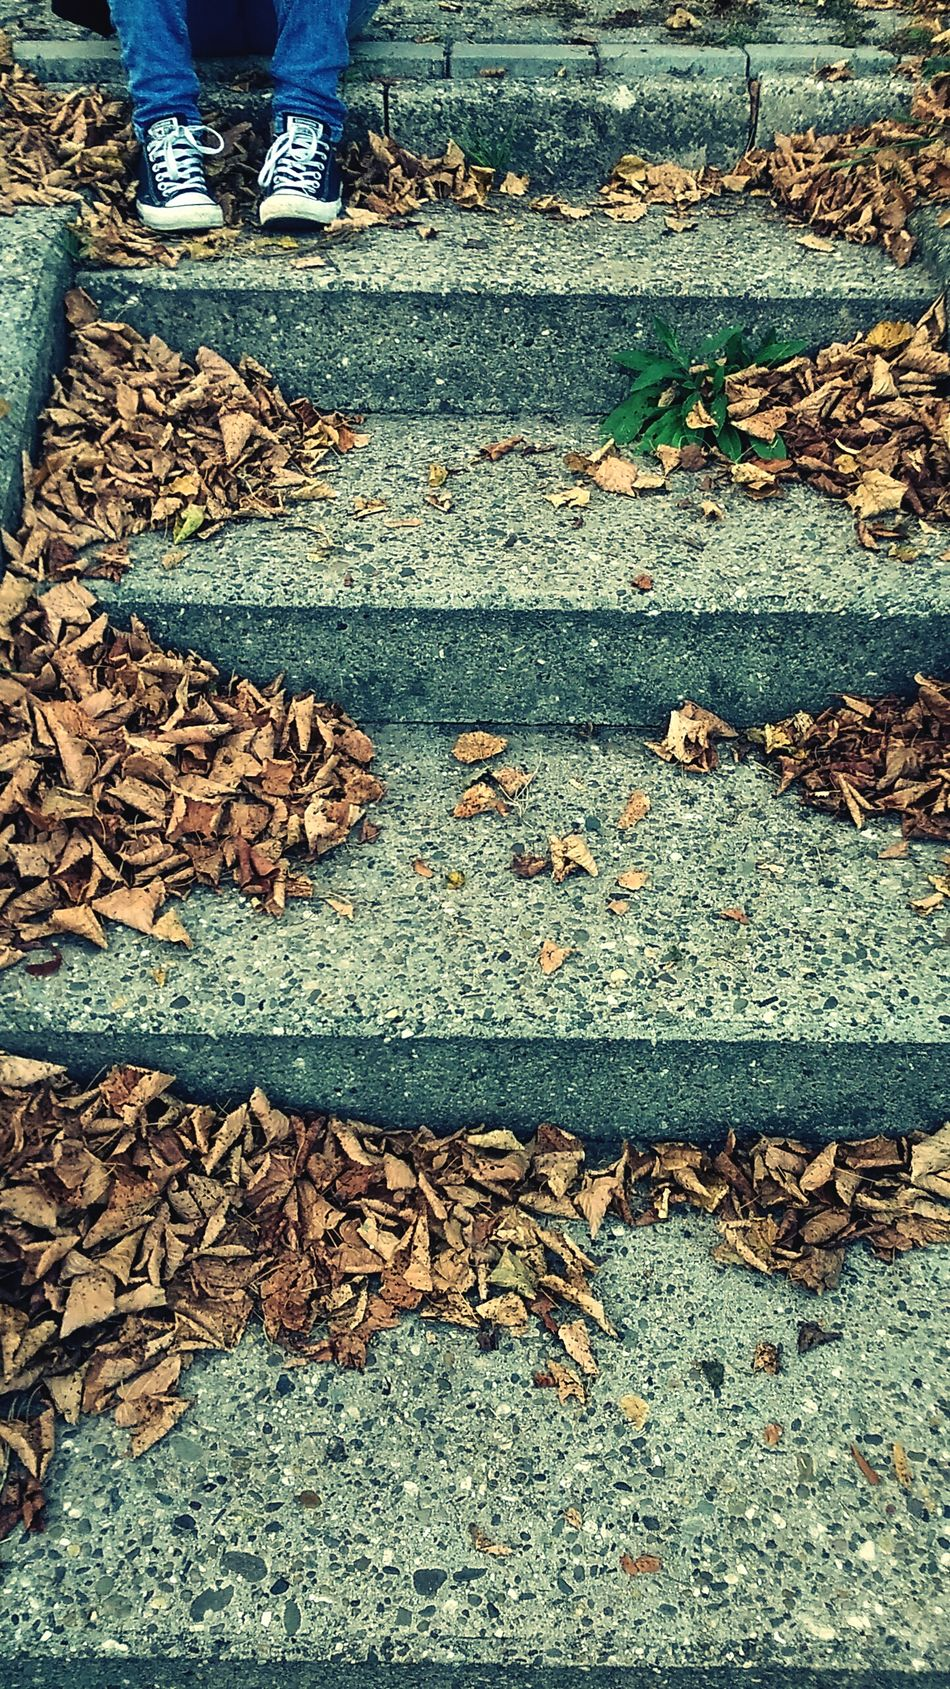 Stears Leaf Sand Paving Stone Day Leaves Footpath Stone Material Outdoors The Way Forward Fallen Leaf Full Frame Surface Level